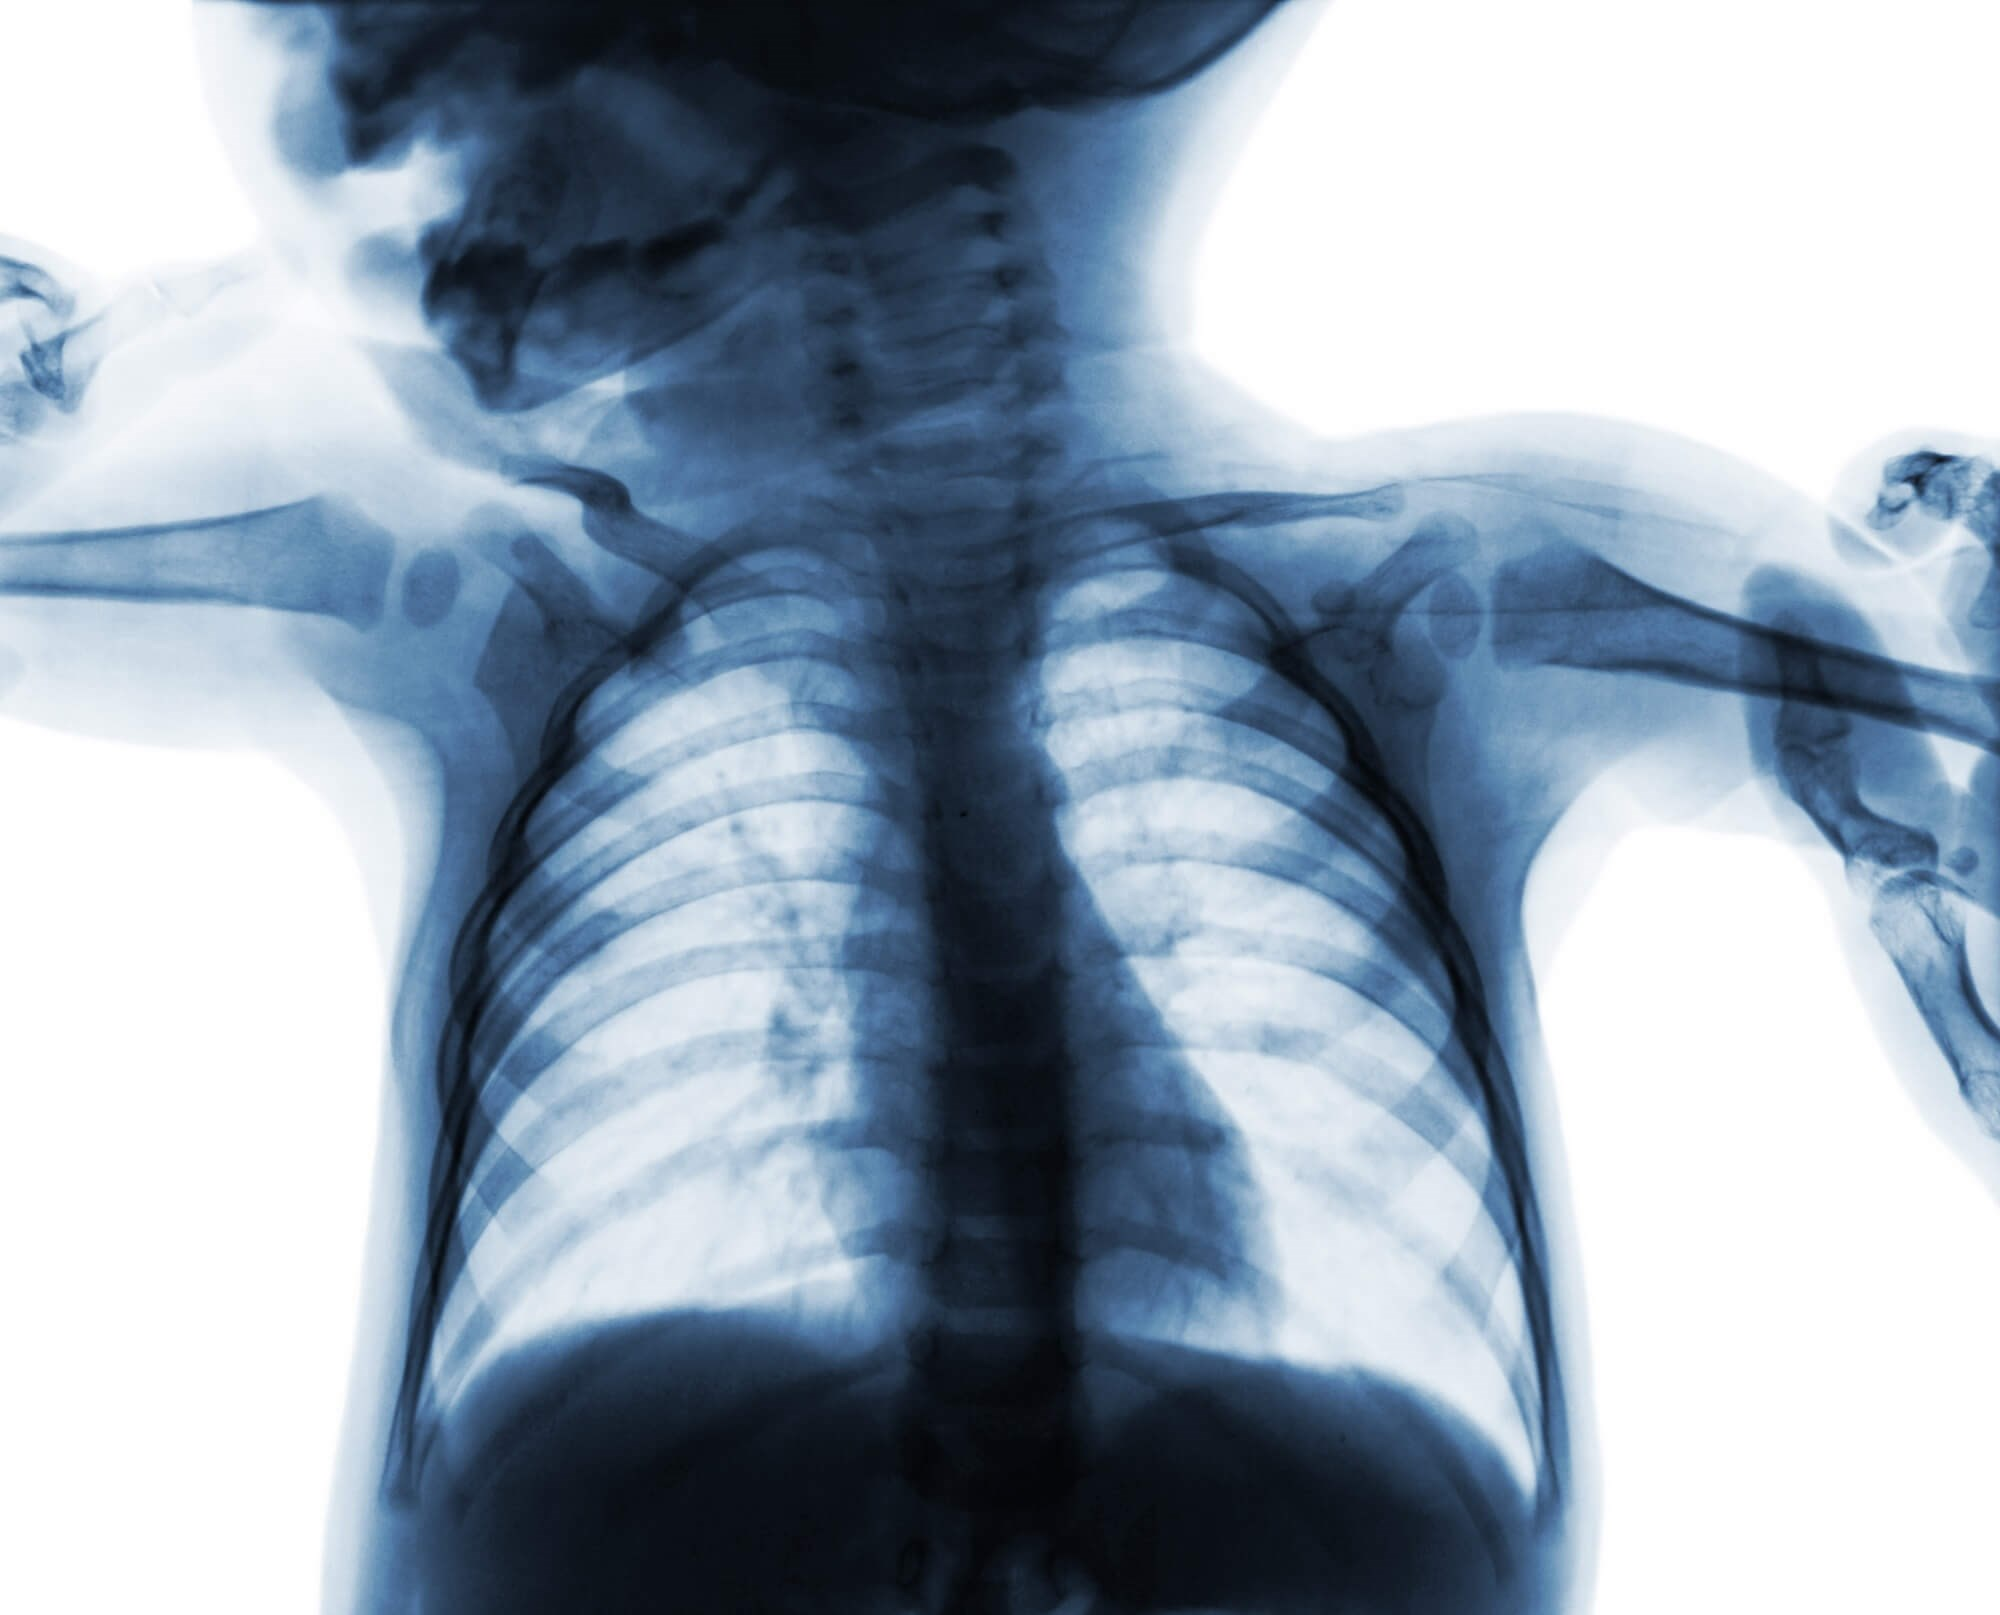 Radiography Still Common in Pediatric Bronchiolitis Despite AAP Guidelines